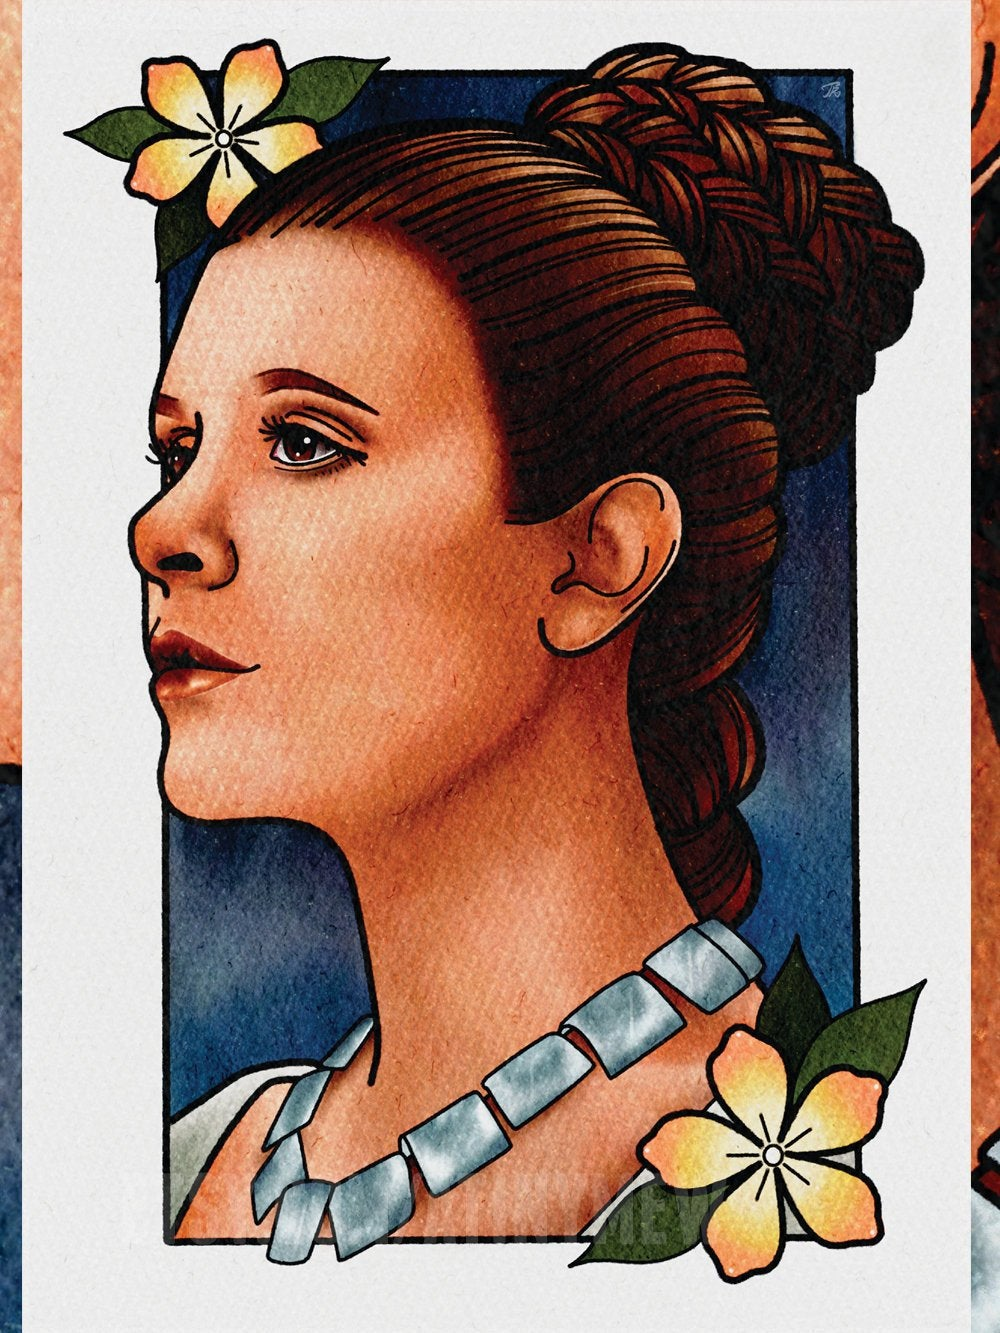 Tattoo Style illustrated art print featuring Princess Leia from Star Wars.